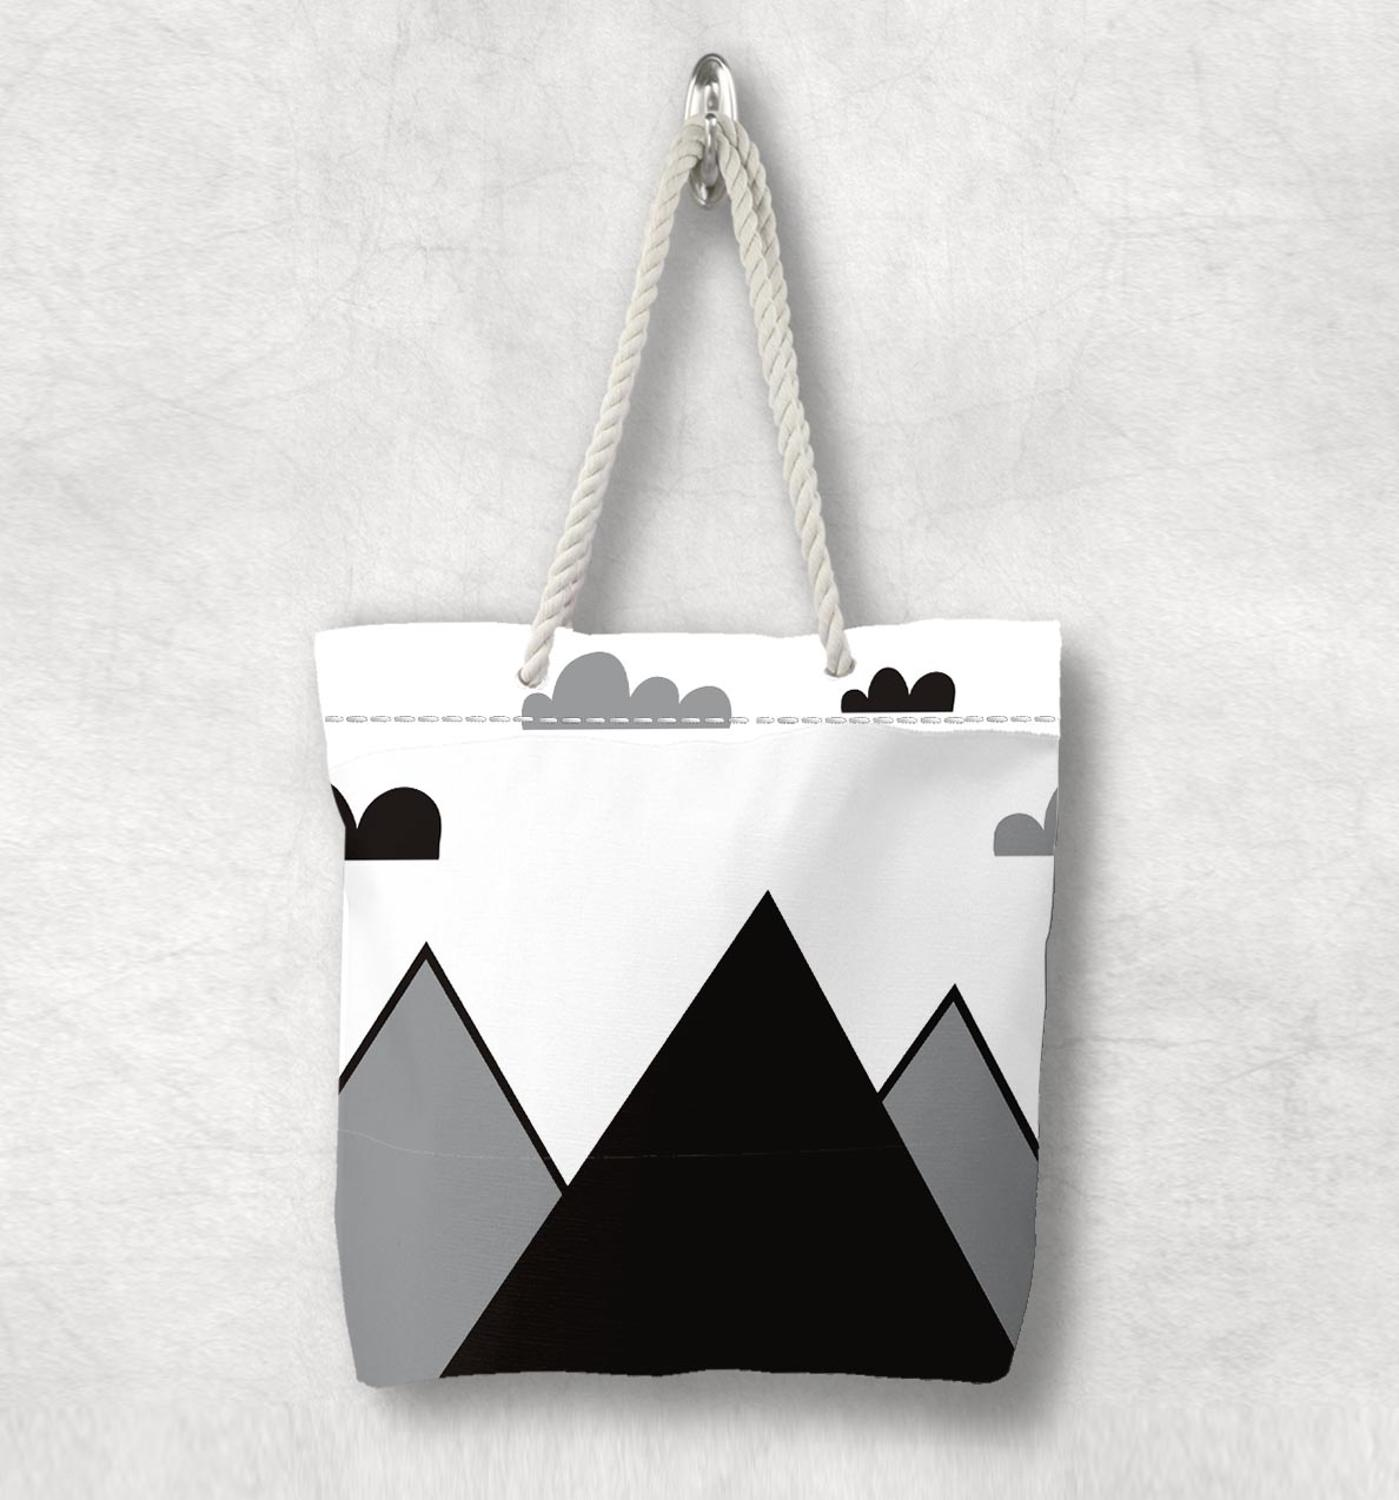 Else Gray Black Mountain Clouds Nordic Scandinavian White Rope Handle Canvas Bag  Cartoon Print Zippered Tote Bag Shoulder Bag